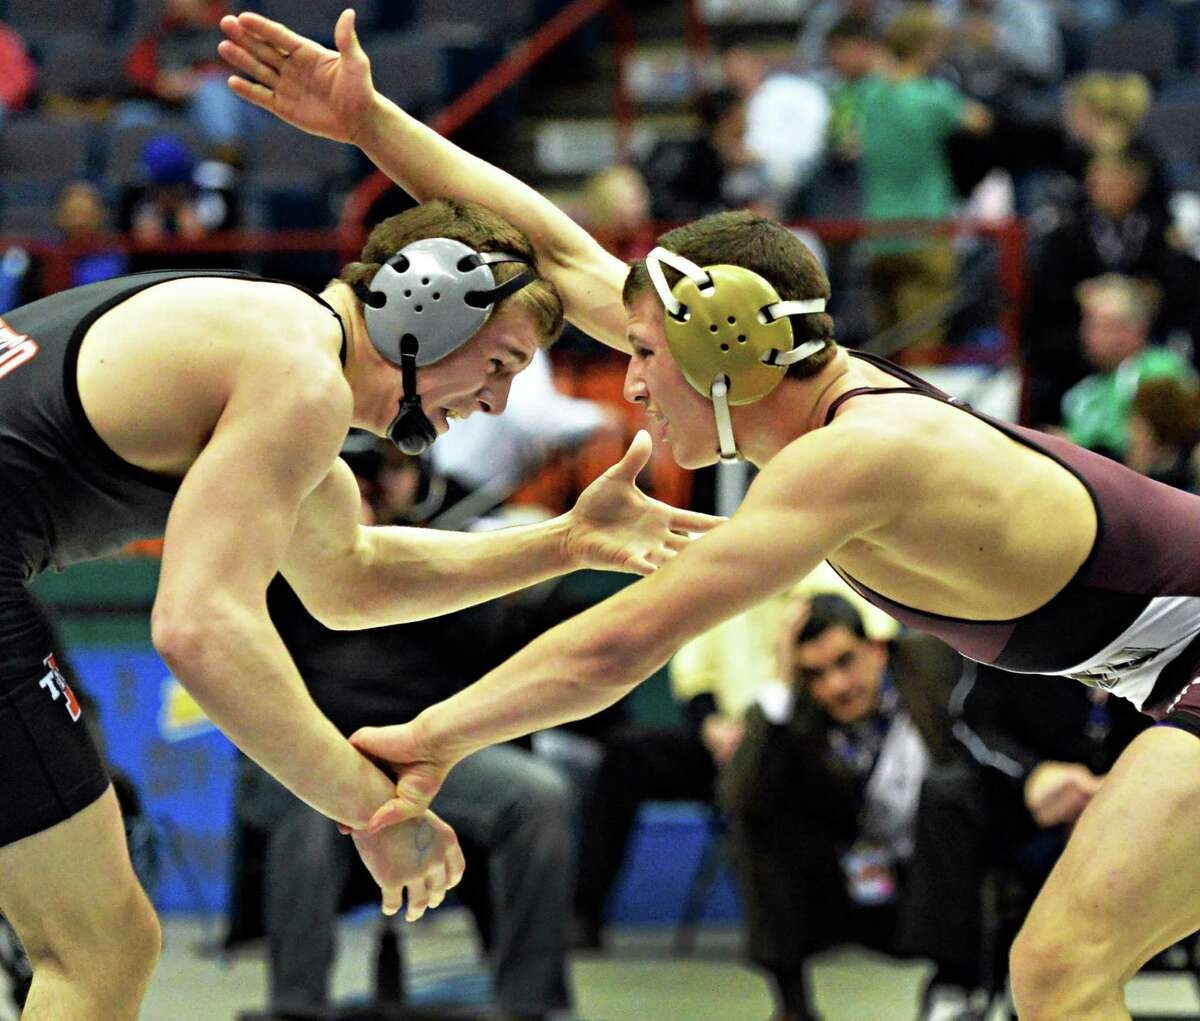 Duanesburg's Connor Larence, right, wrestles Mexico's Trevor Allard during the NY State Wrestling Championships Saturdy March 1, 2014, at the Times Union Center in Albany, NY. (John Carl D'Annibale / Times Union)